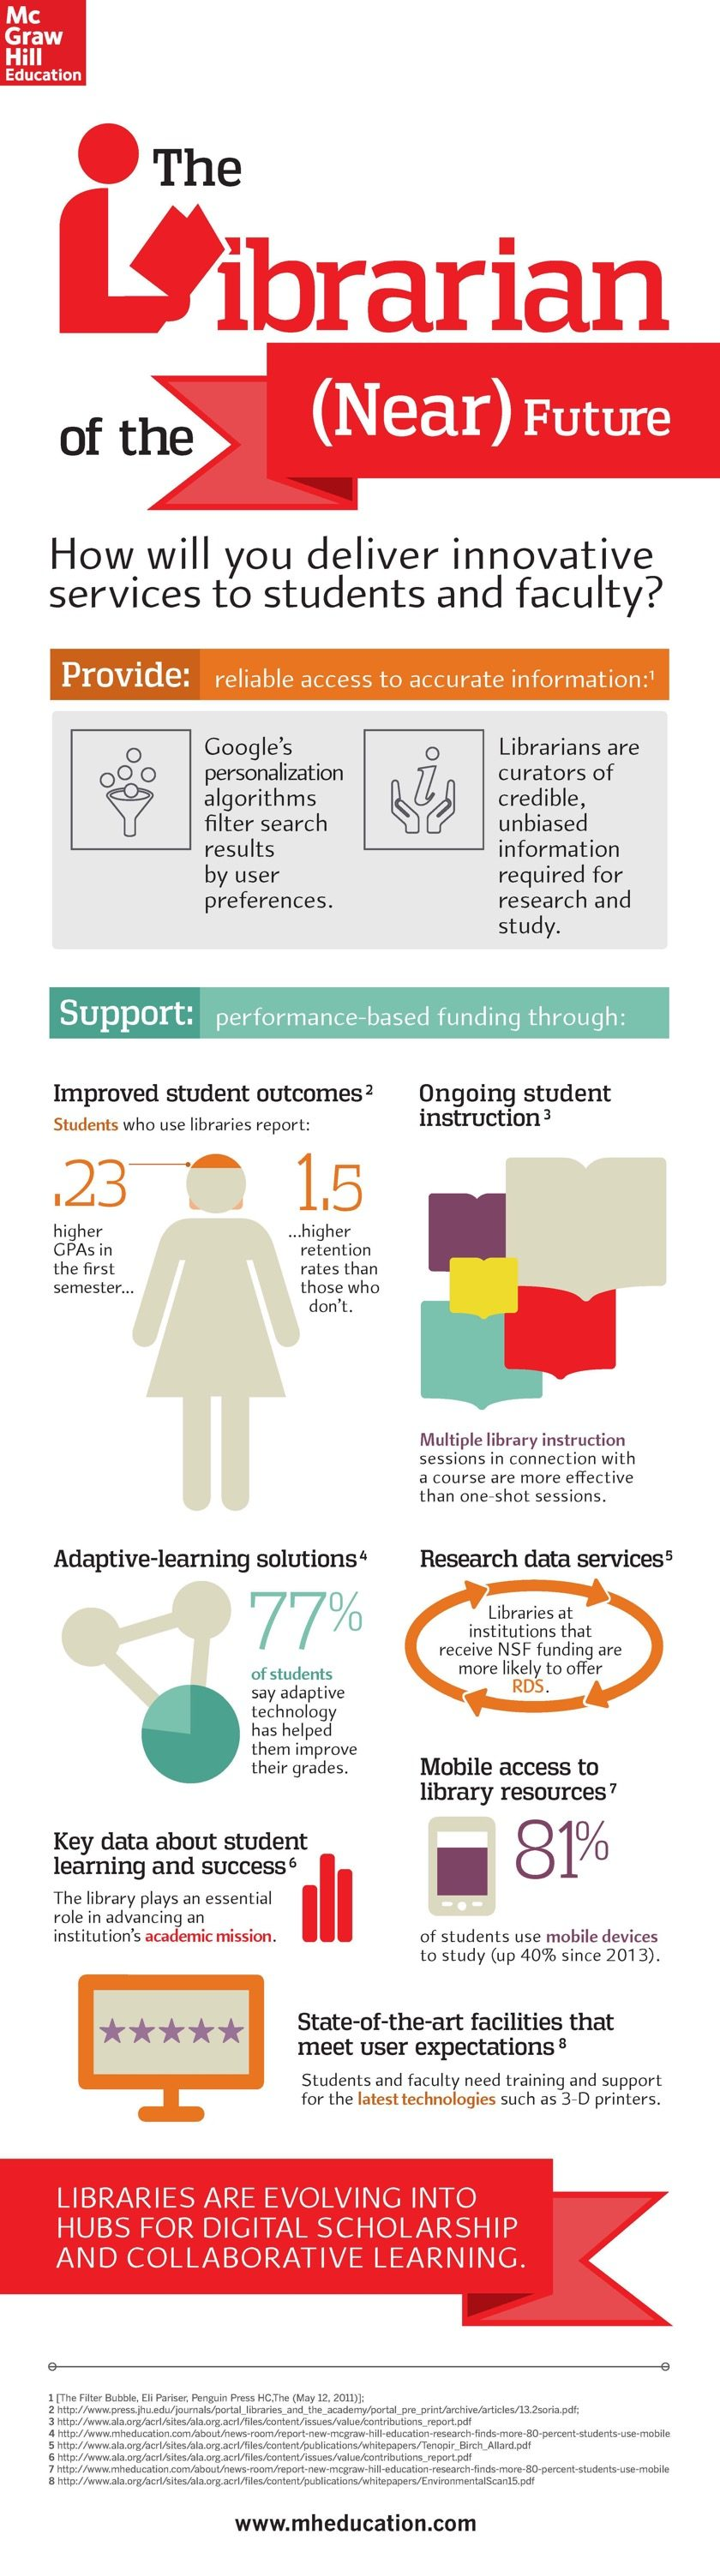 the-changing-role-of-the-modern-librarian-full-infographic-840x3006